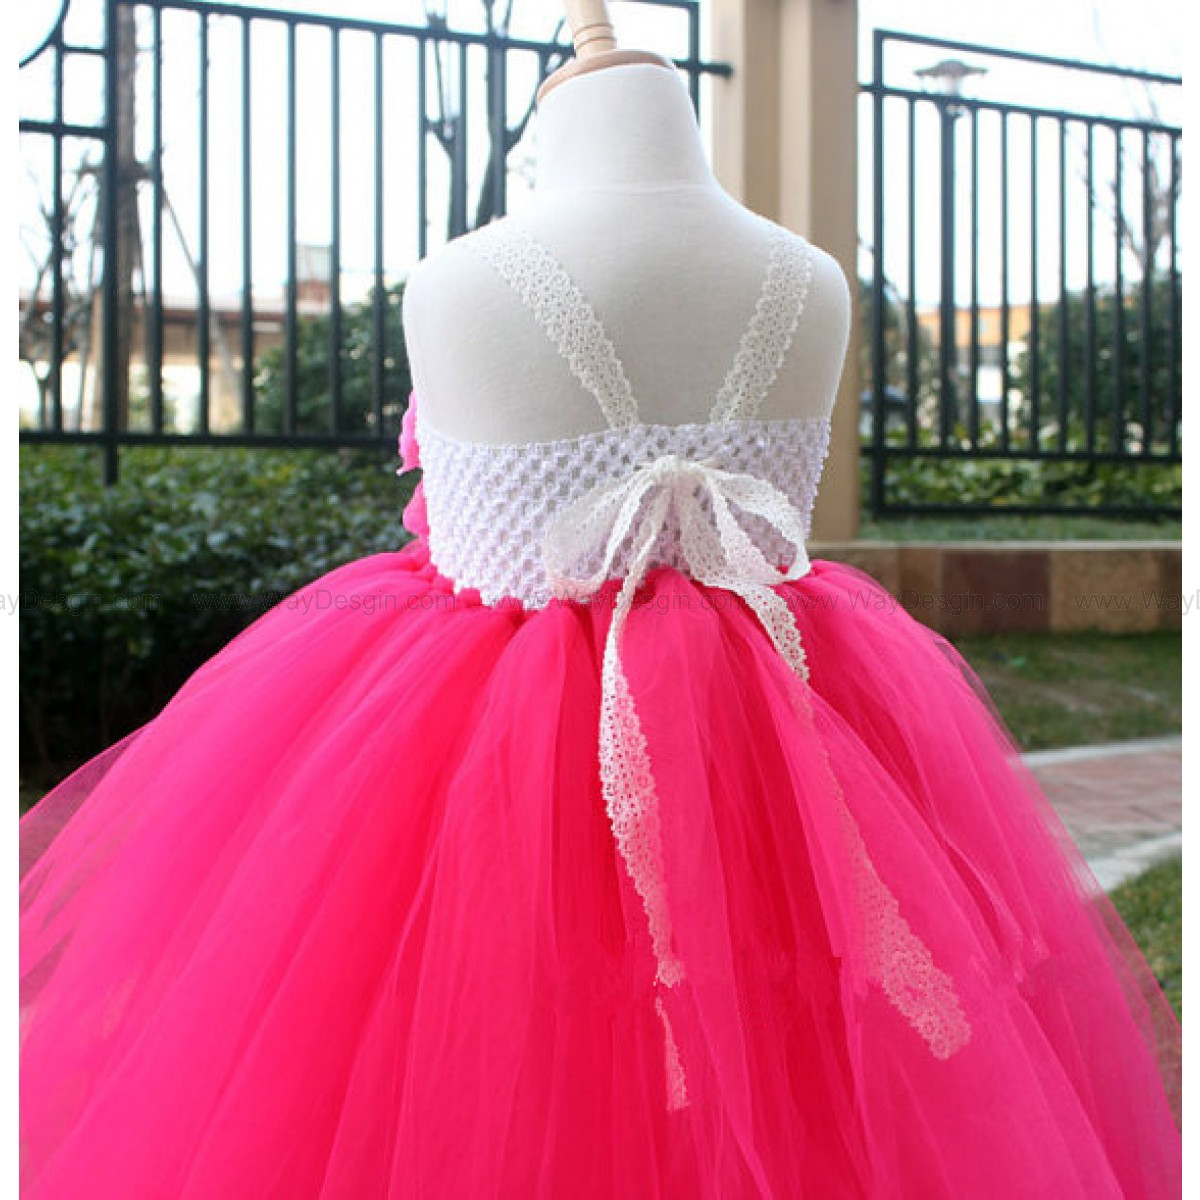 Hot Pink Toddler Flower Girl Dresses 57